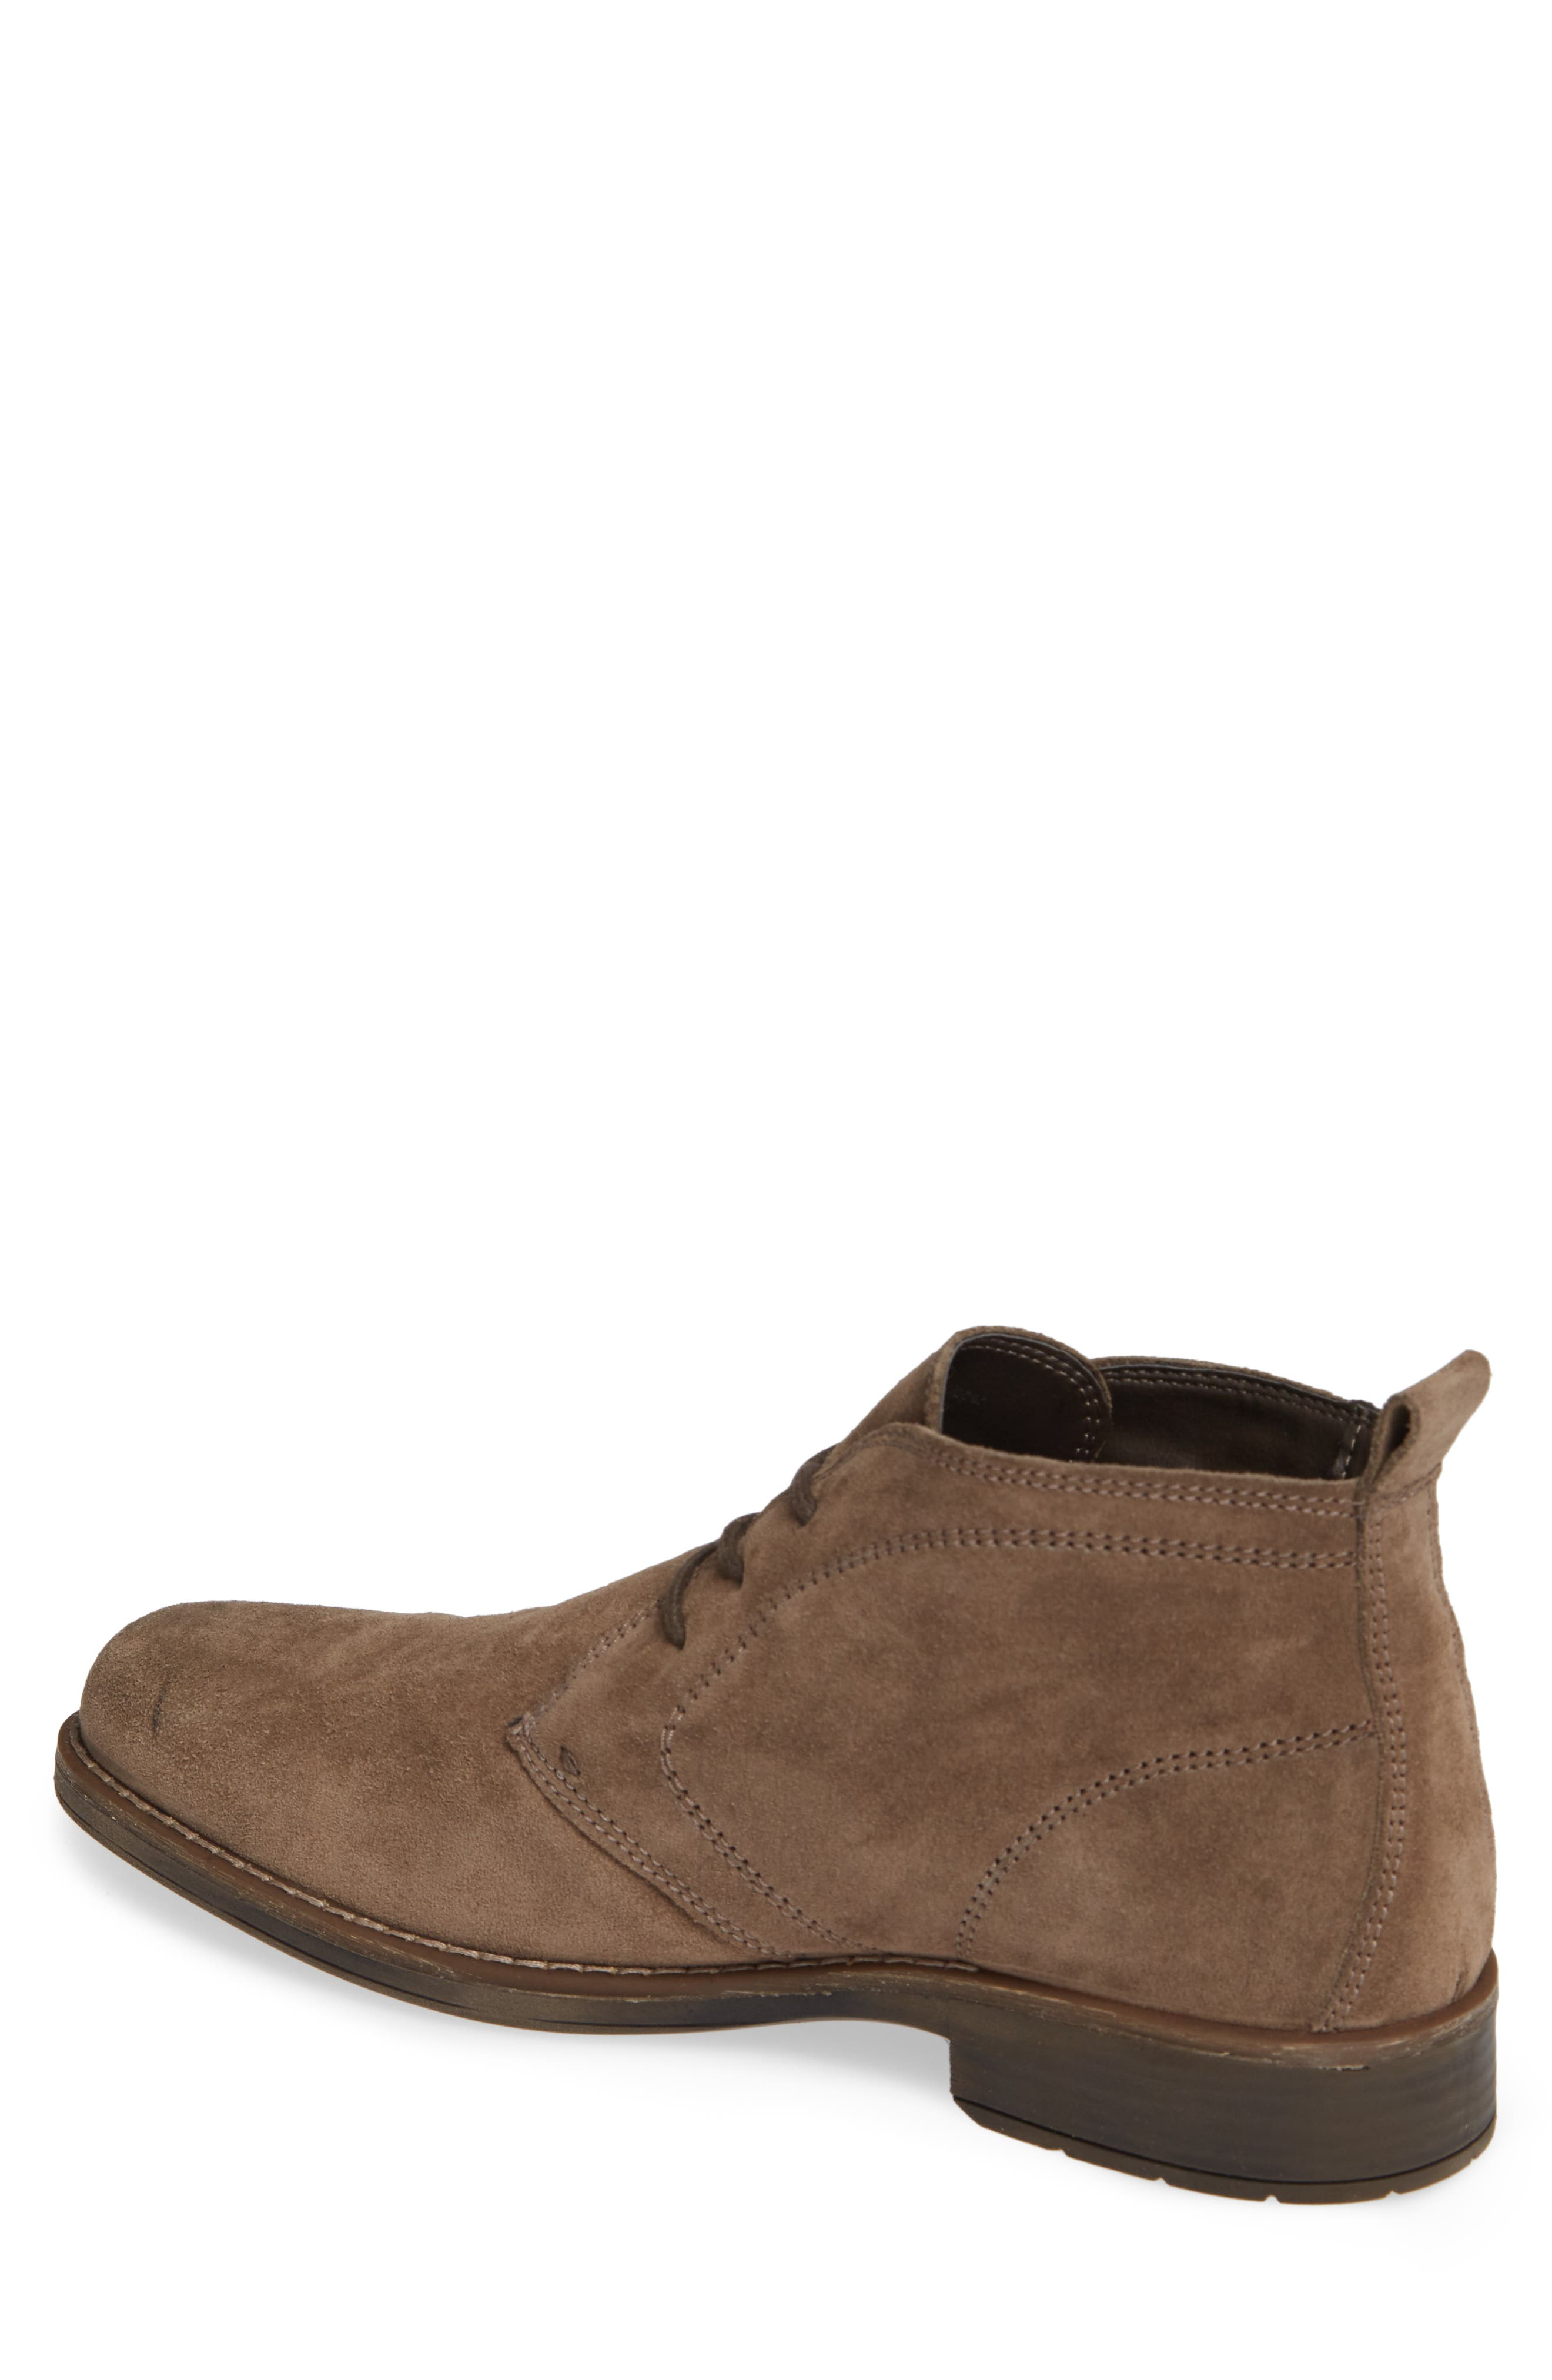 Stevens Waterproof Chukka Boot,                             Alternate thumbnail 2, color,                             TAUPE SUEDE